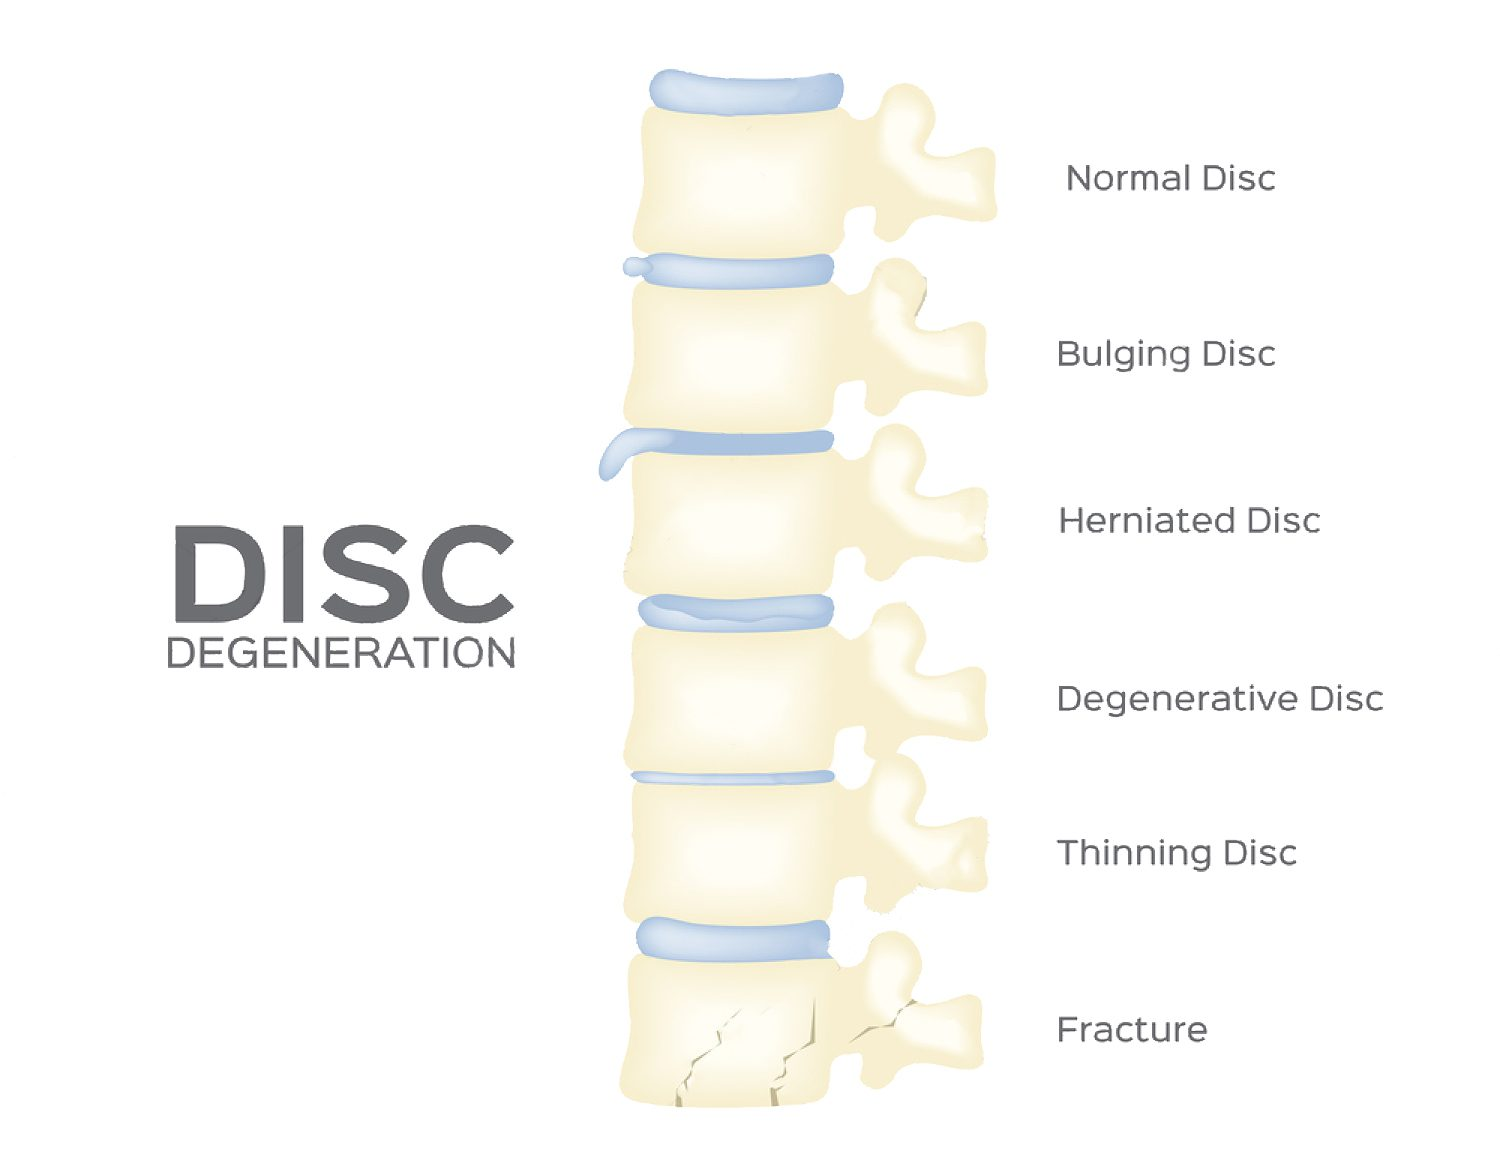 Herniated disk tretman